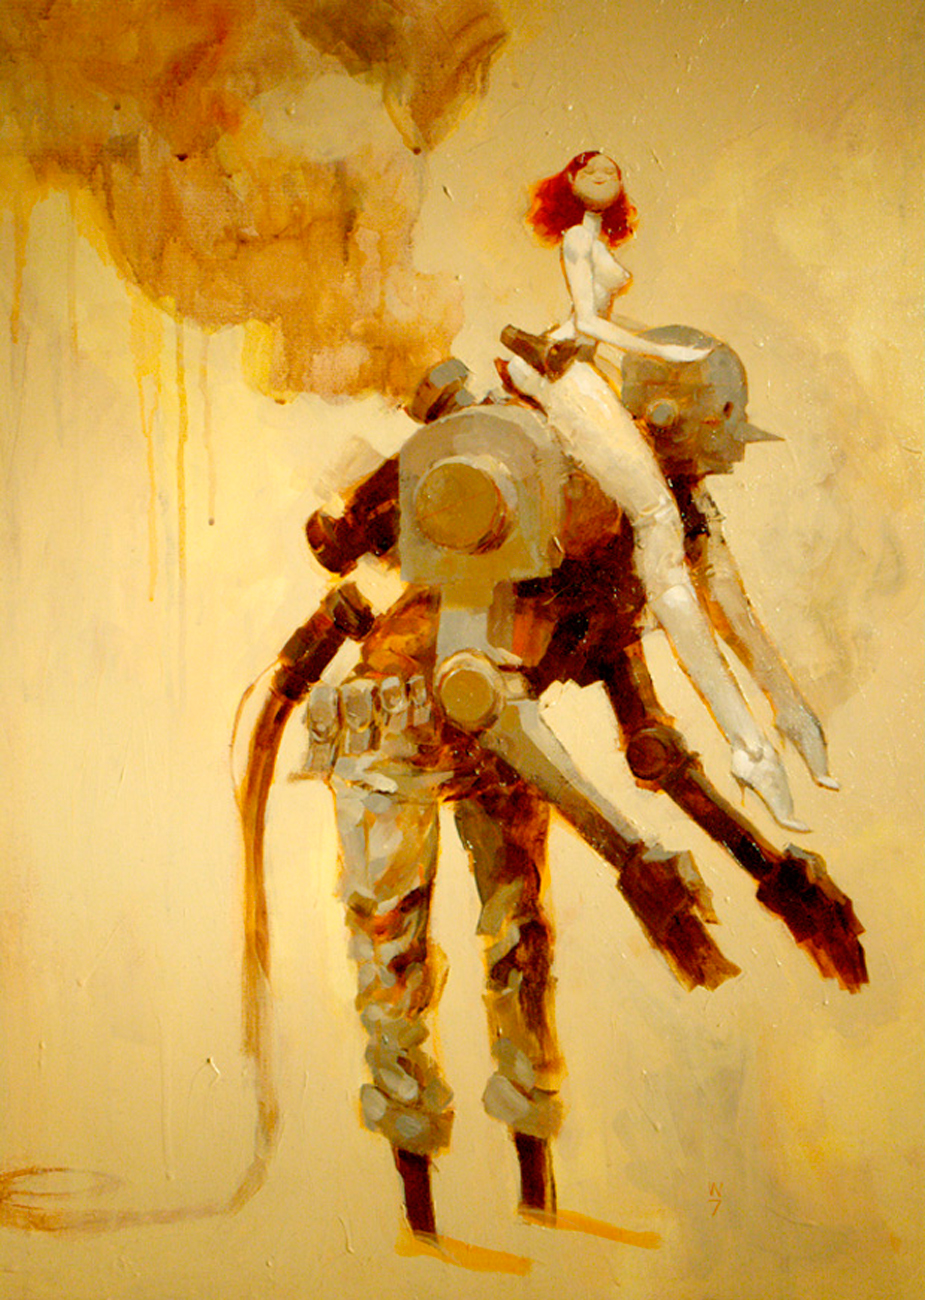 Ilustración del Australiano Ashley Wood